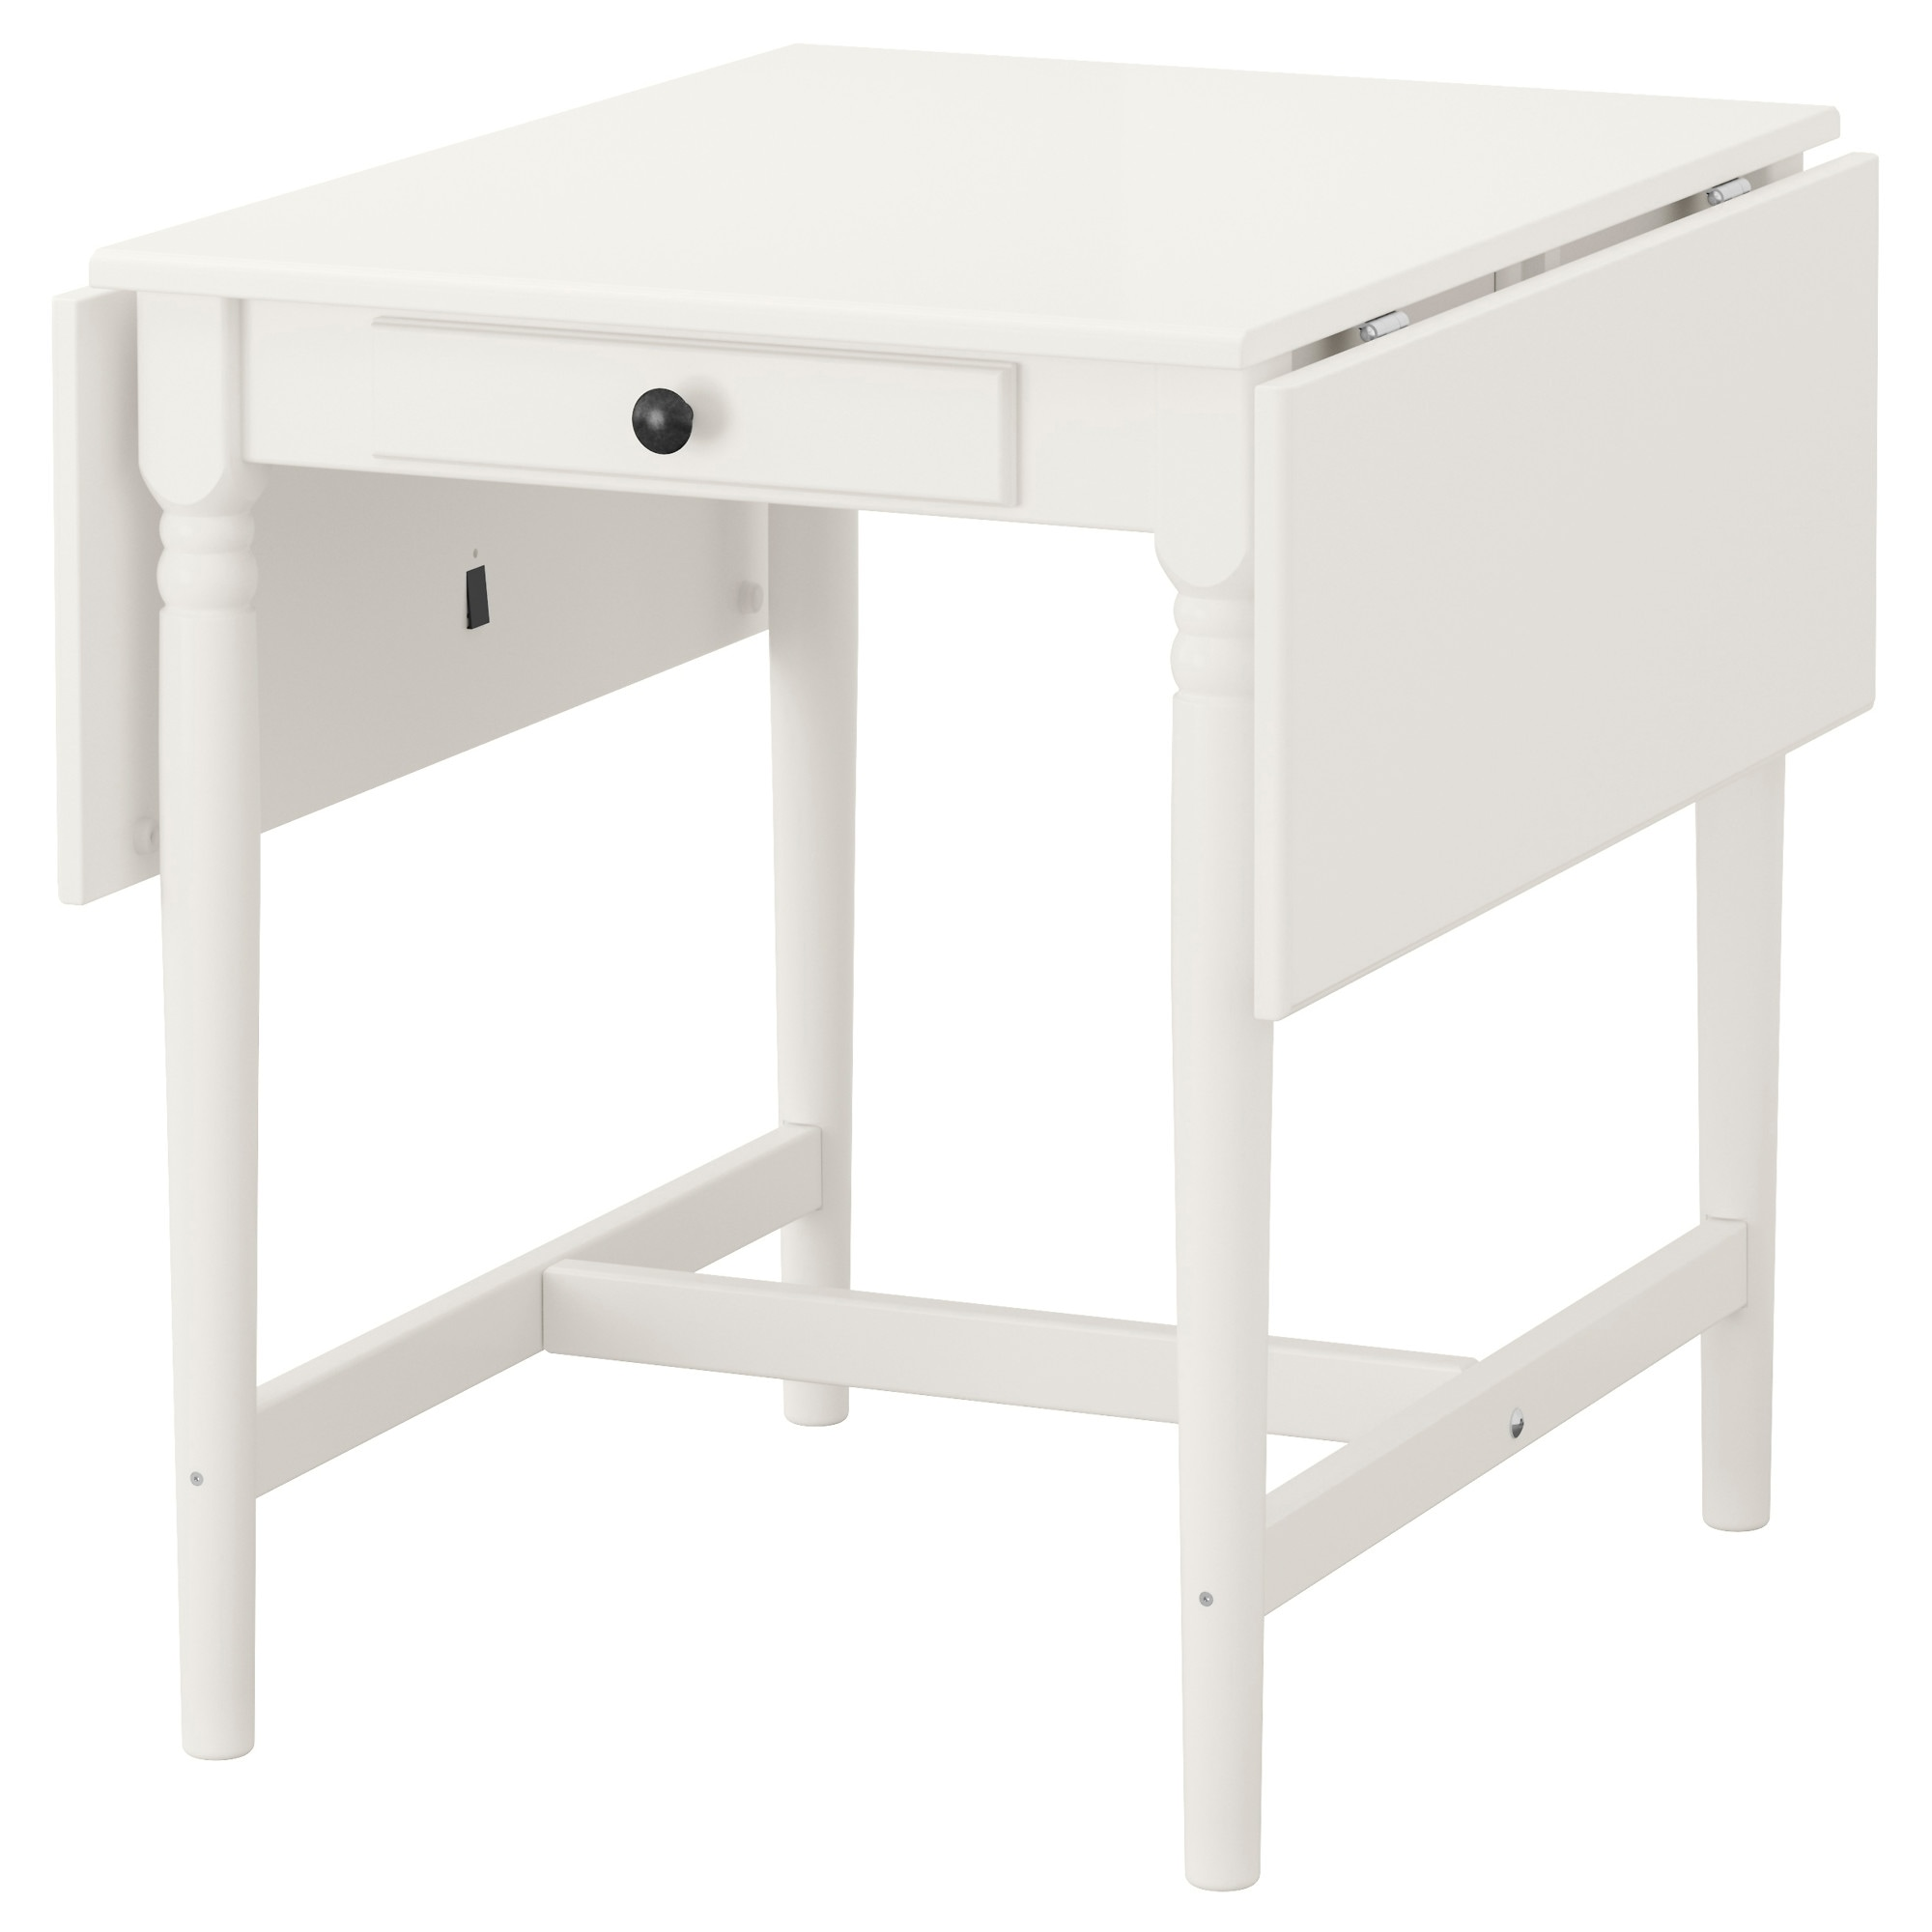 Captivating INGATORP Drop Leaf Table   IKEA